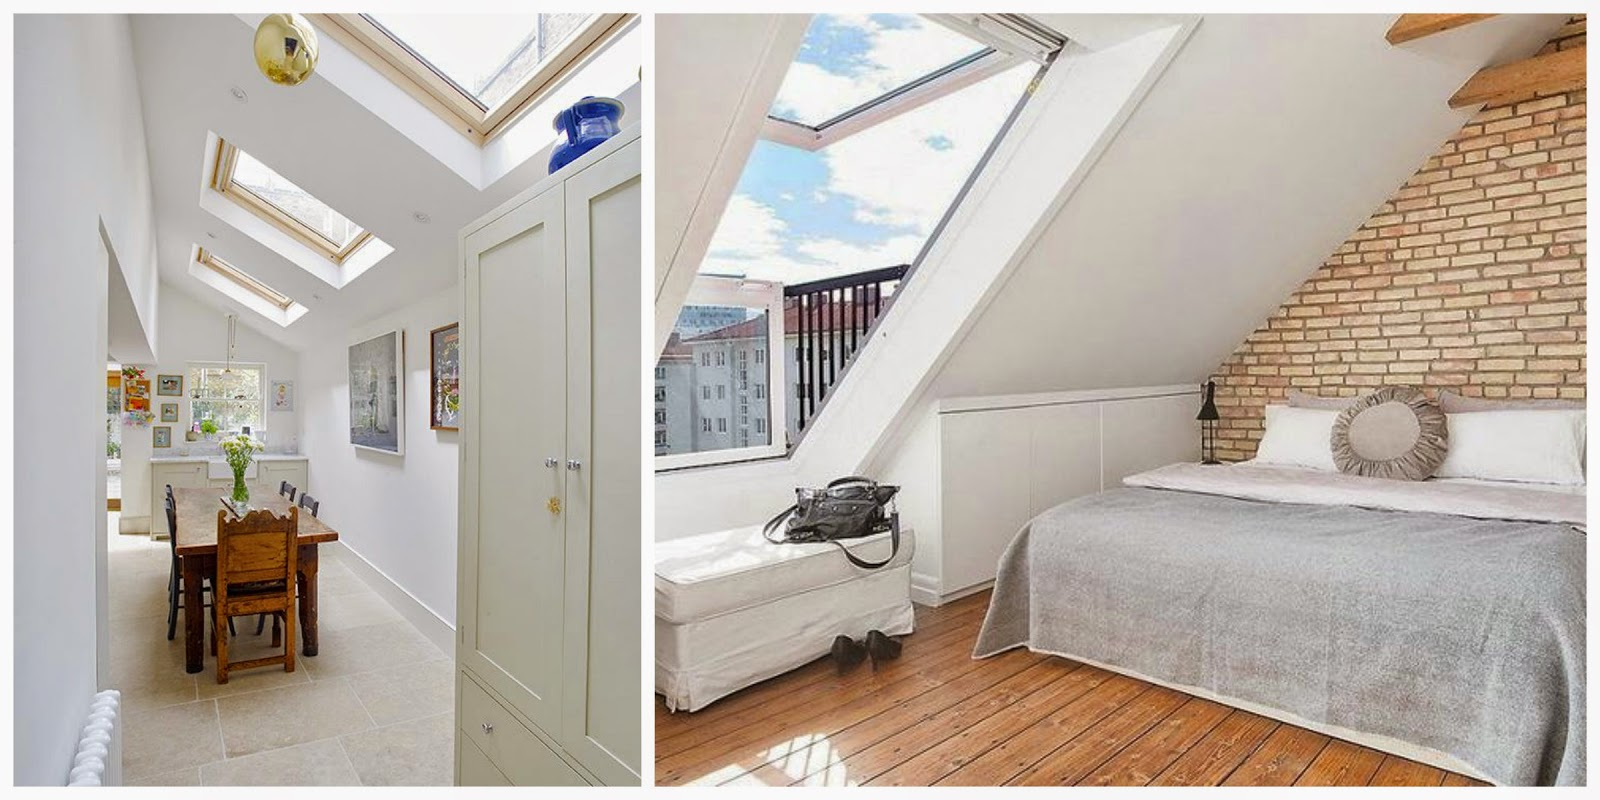 Get as much as daylight as possible with ceiling sheds and windows to save electricity